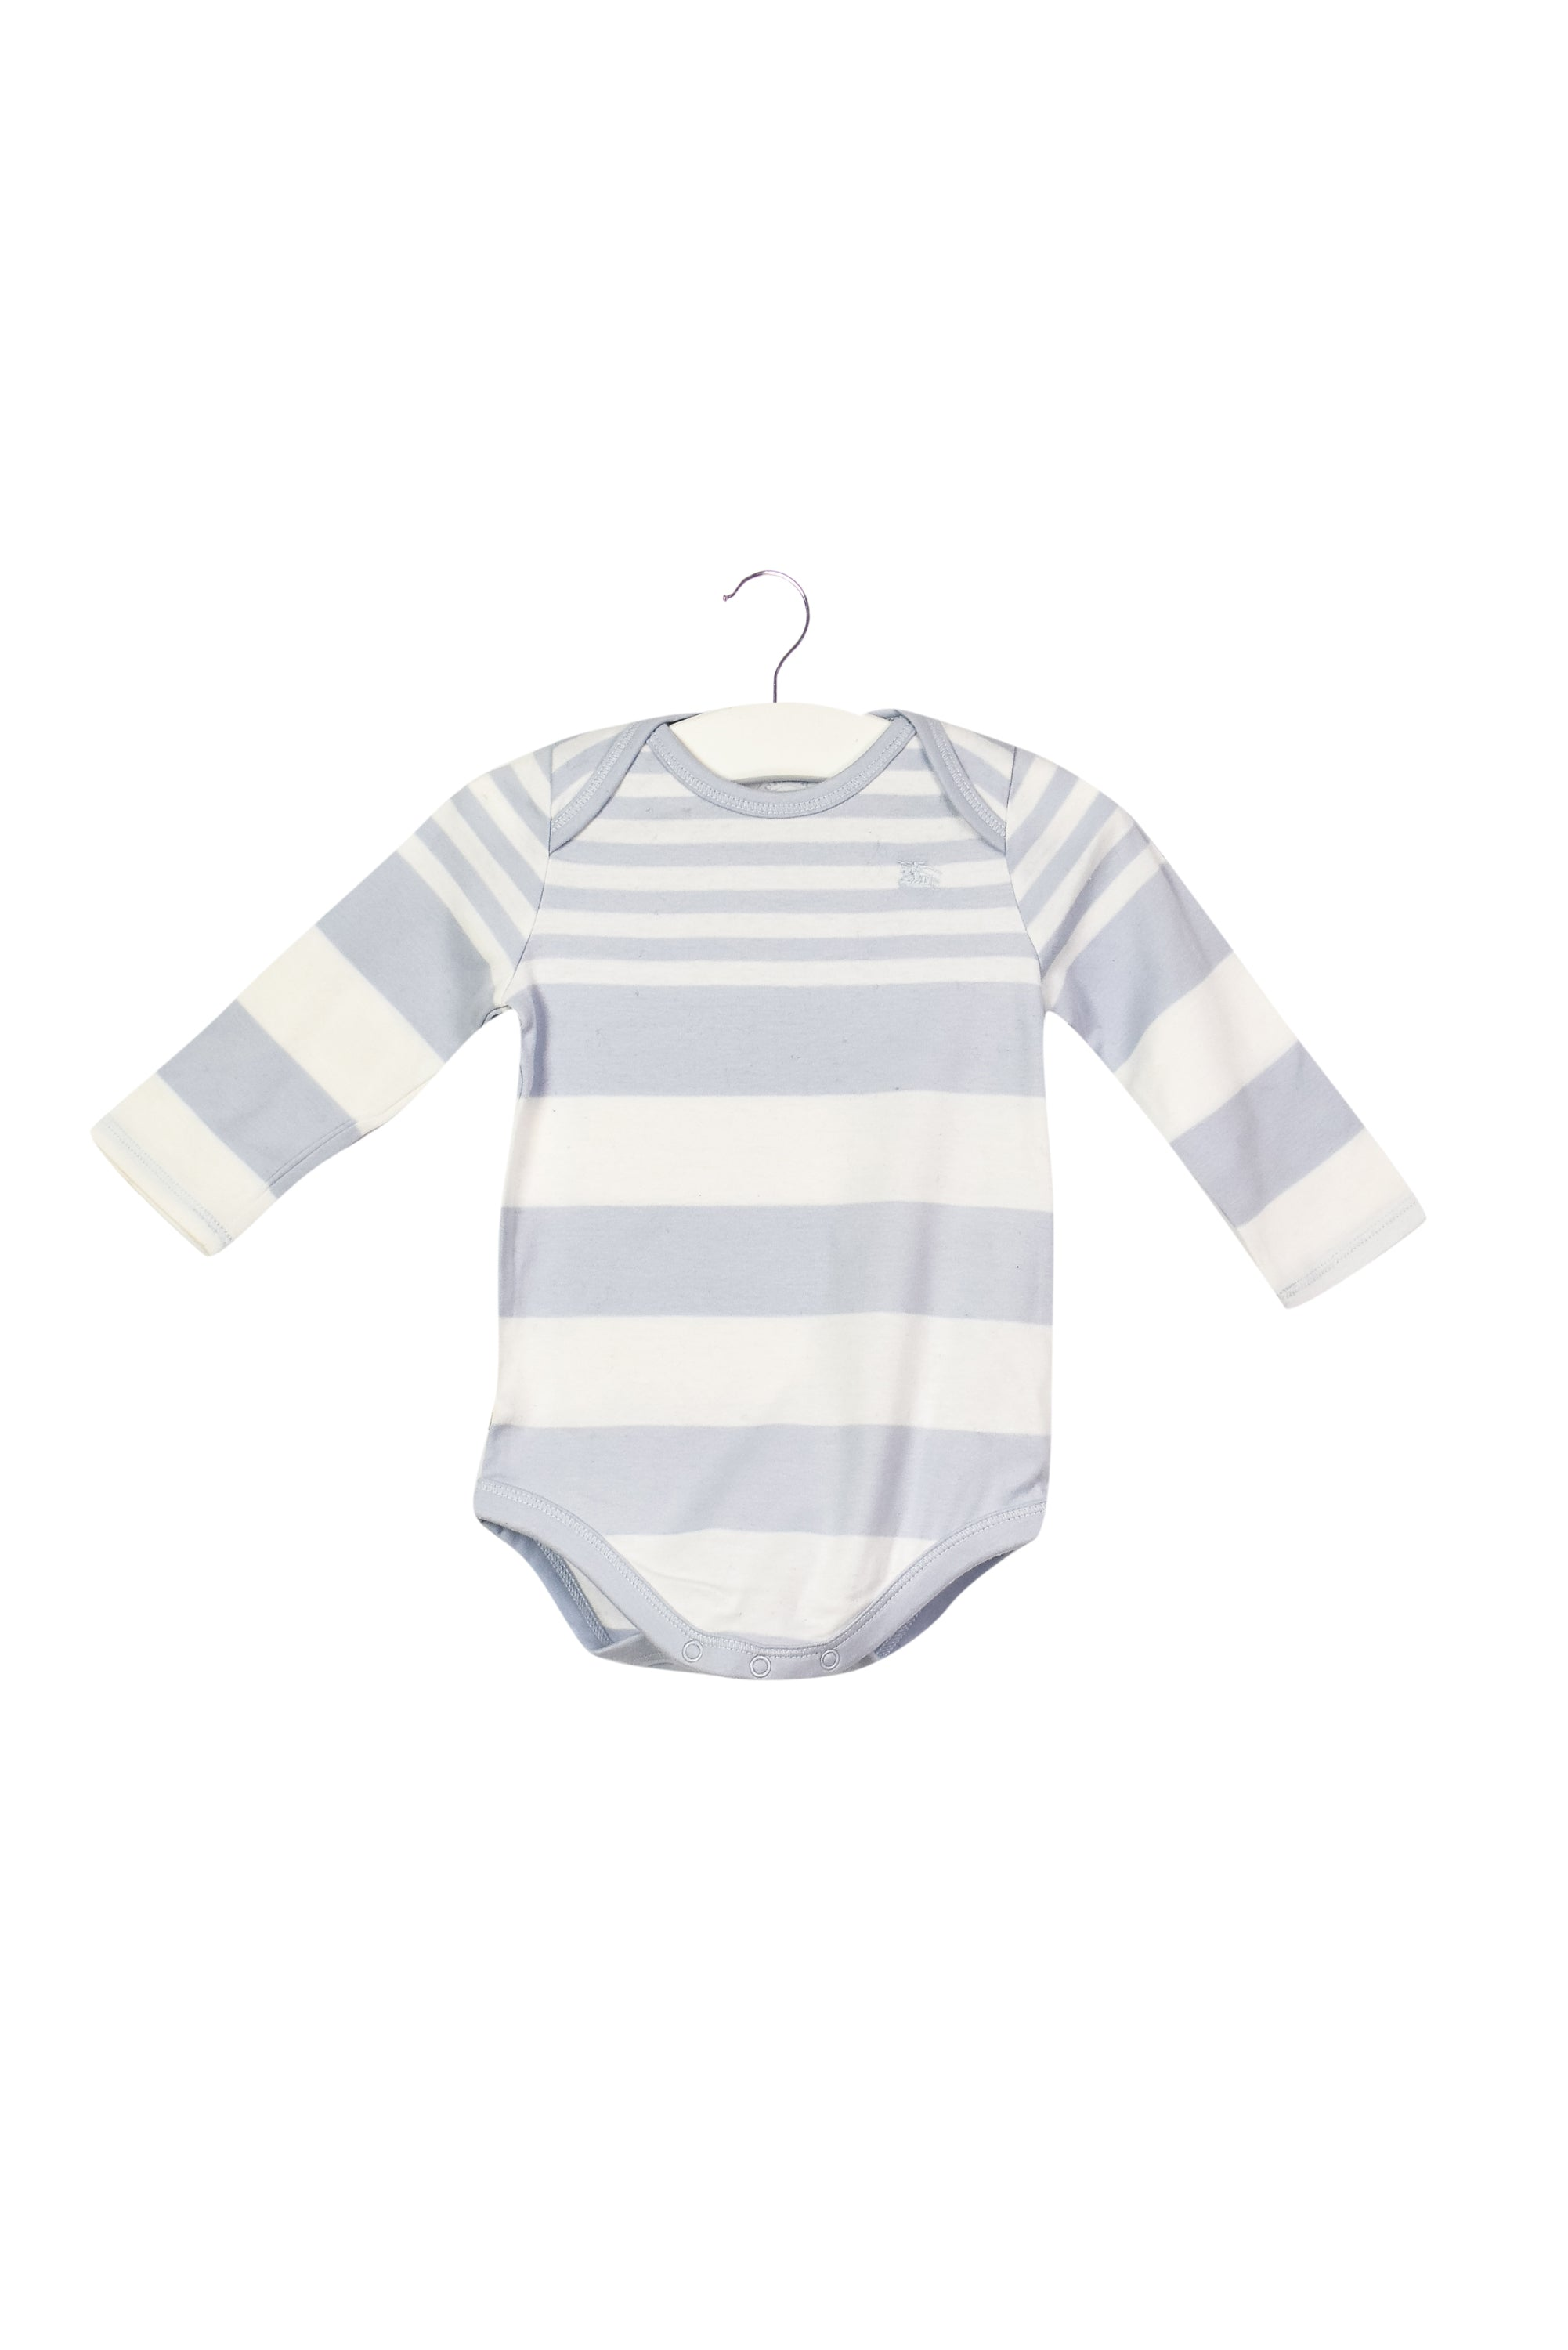 10037898 Burberry Baby~Bodysuit 6M at Retykle